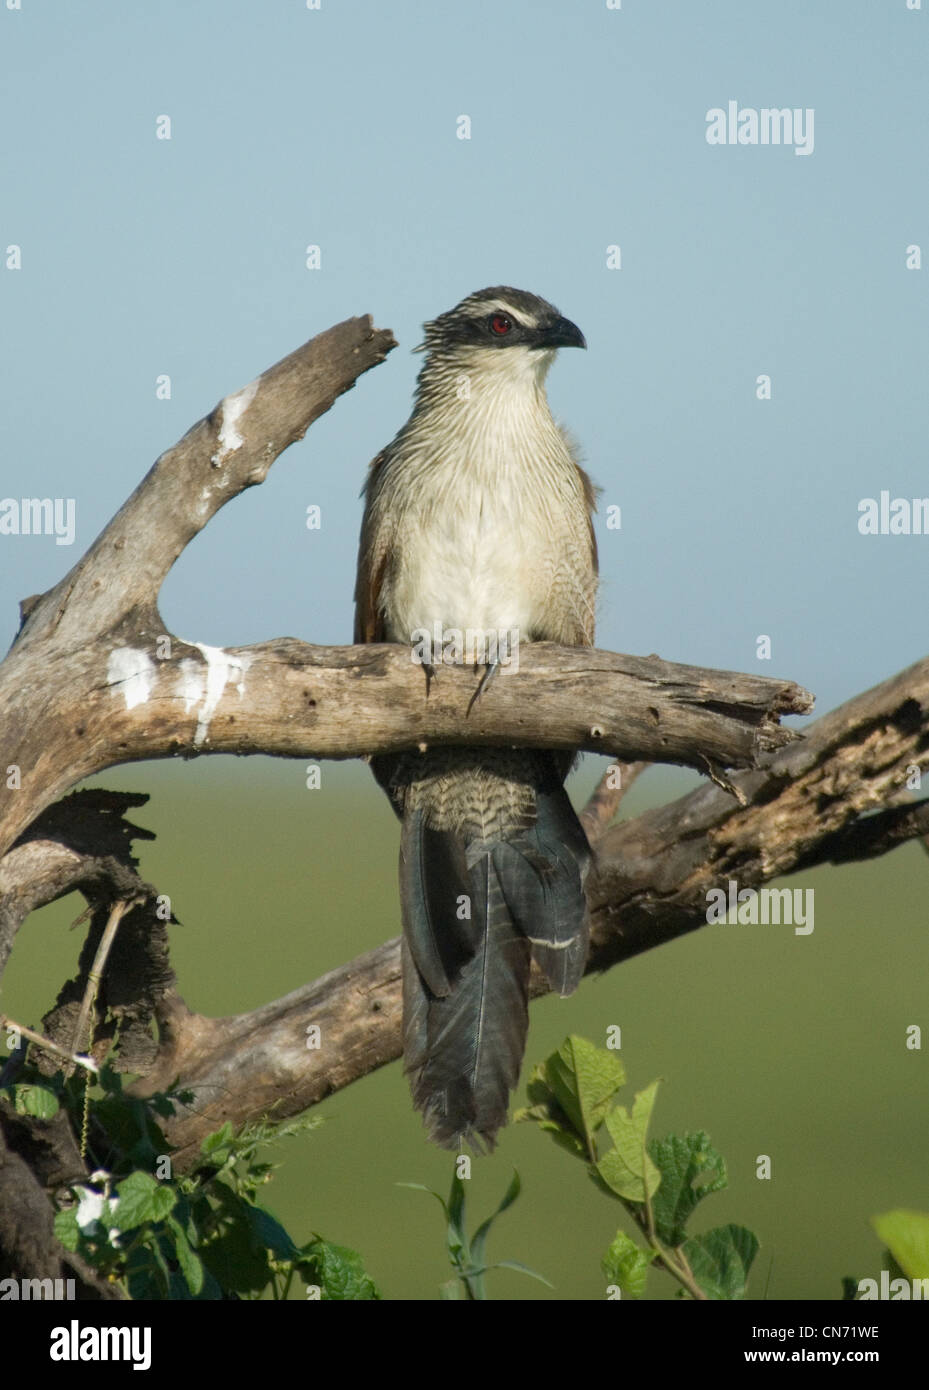 White-browed coucal - Stock Image